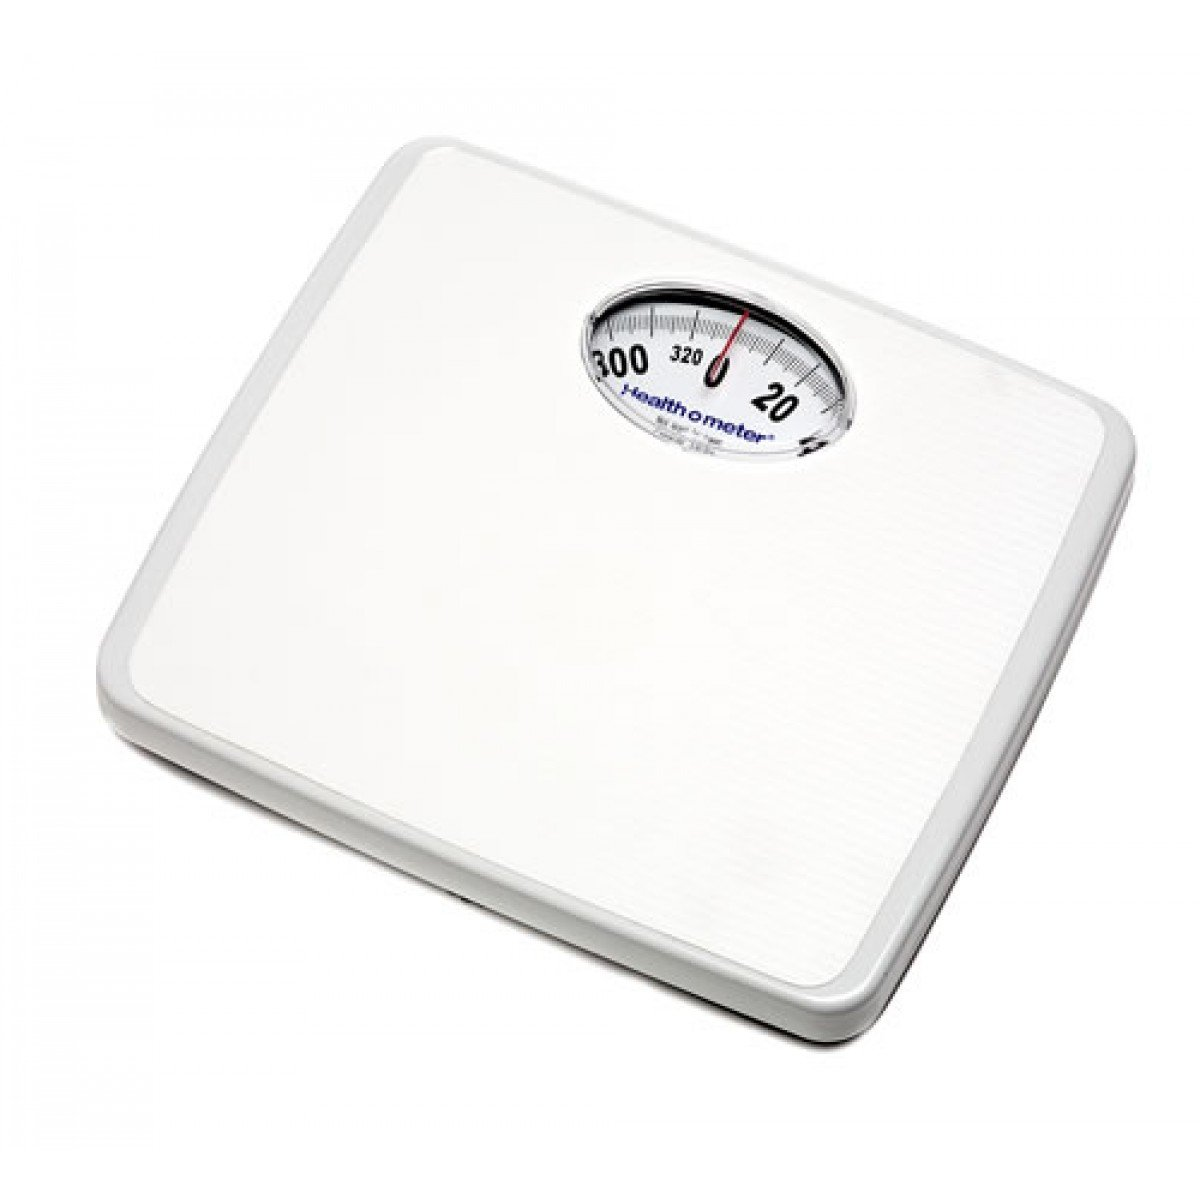 Health o meter 175LB Mechanical Dial Scale 330 lb Capacity by Pelstar LLC Health Prods by Health o Meter